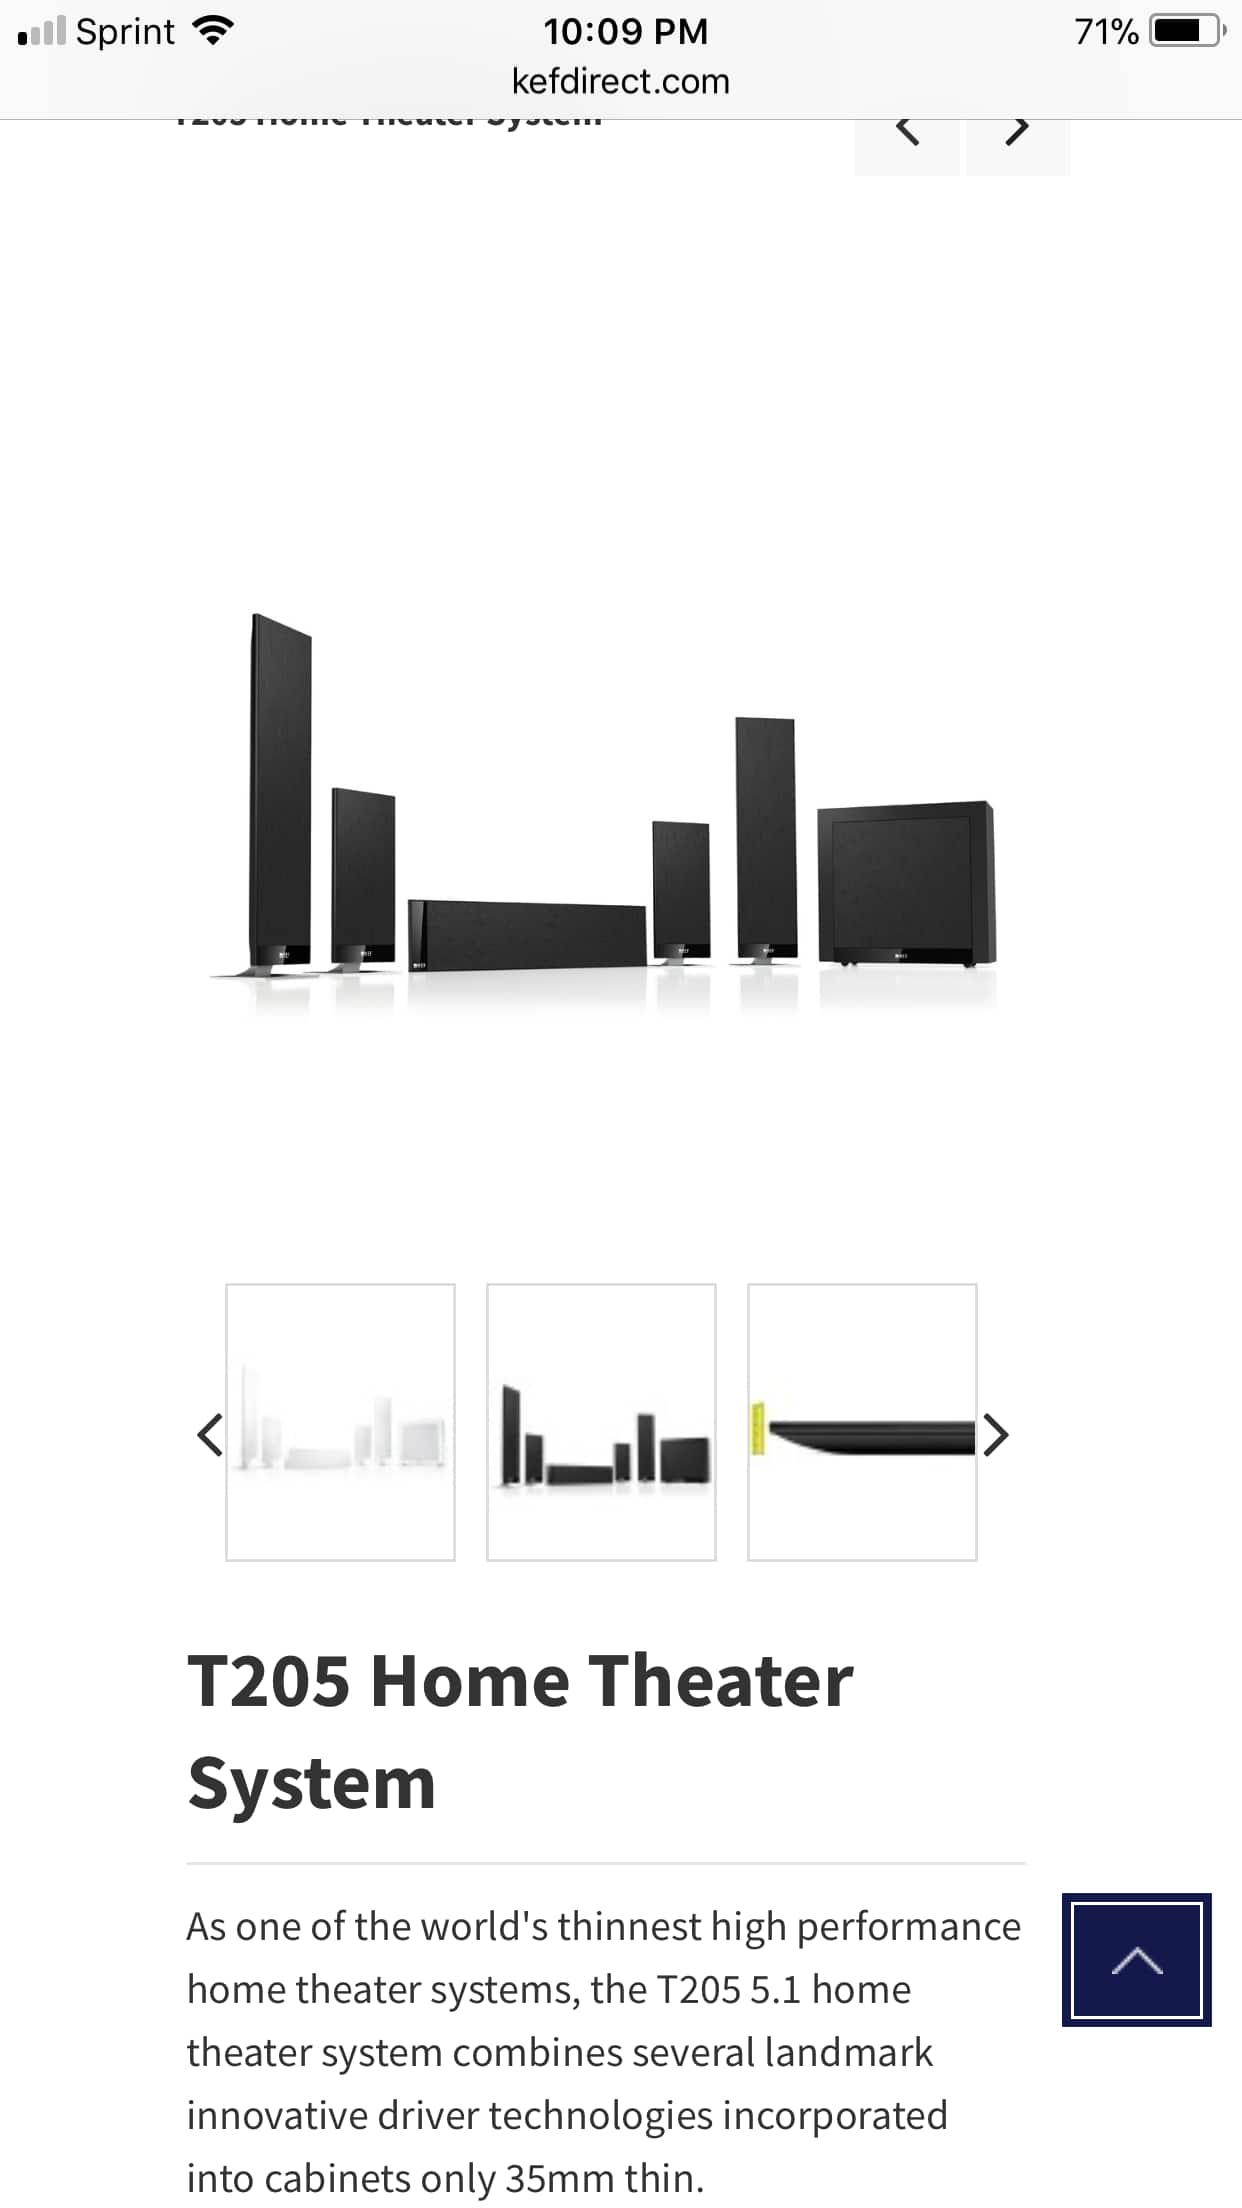 KEF t205 Home Theater System $1,199